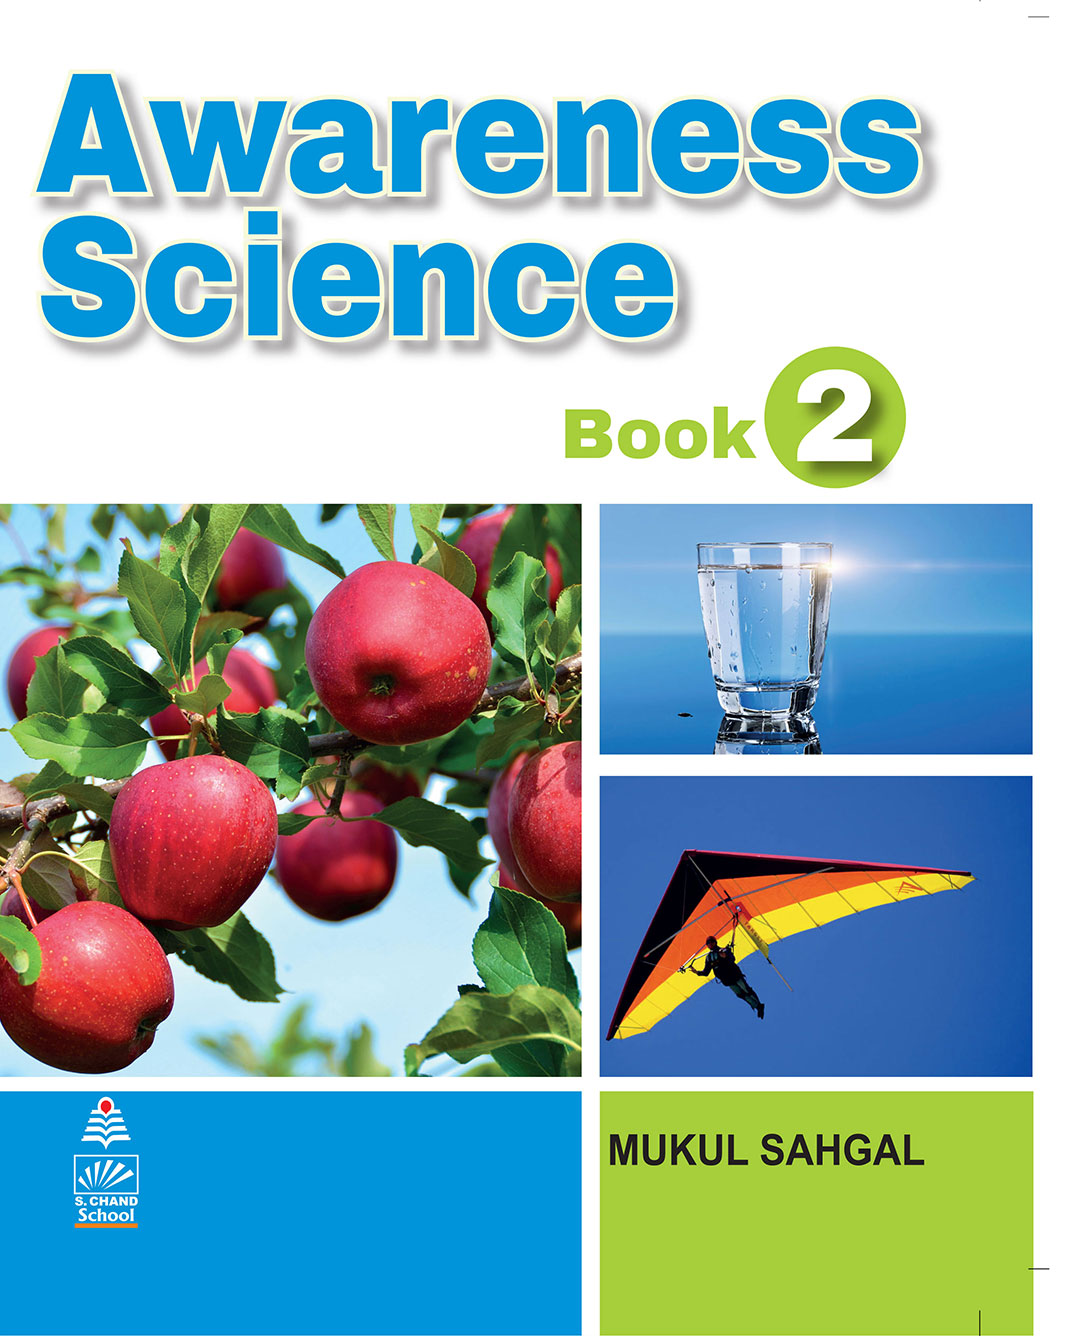 Awareness Science Book-2